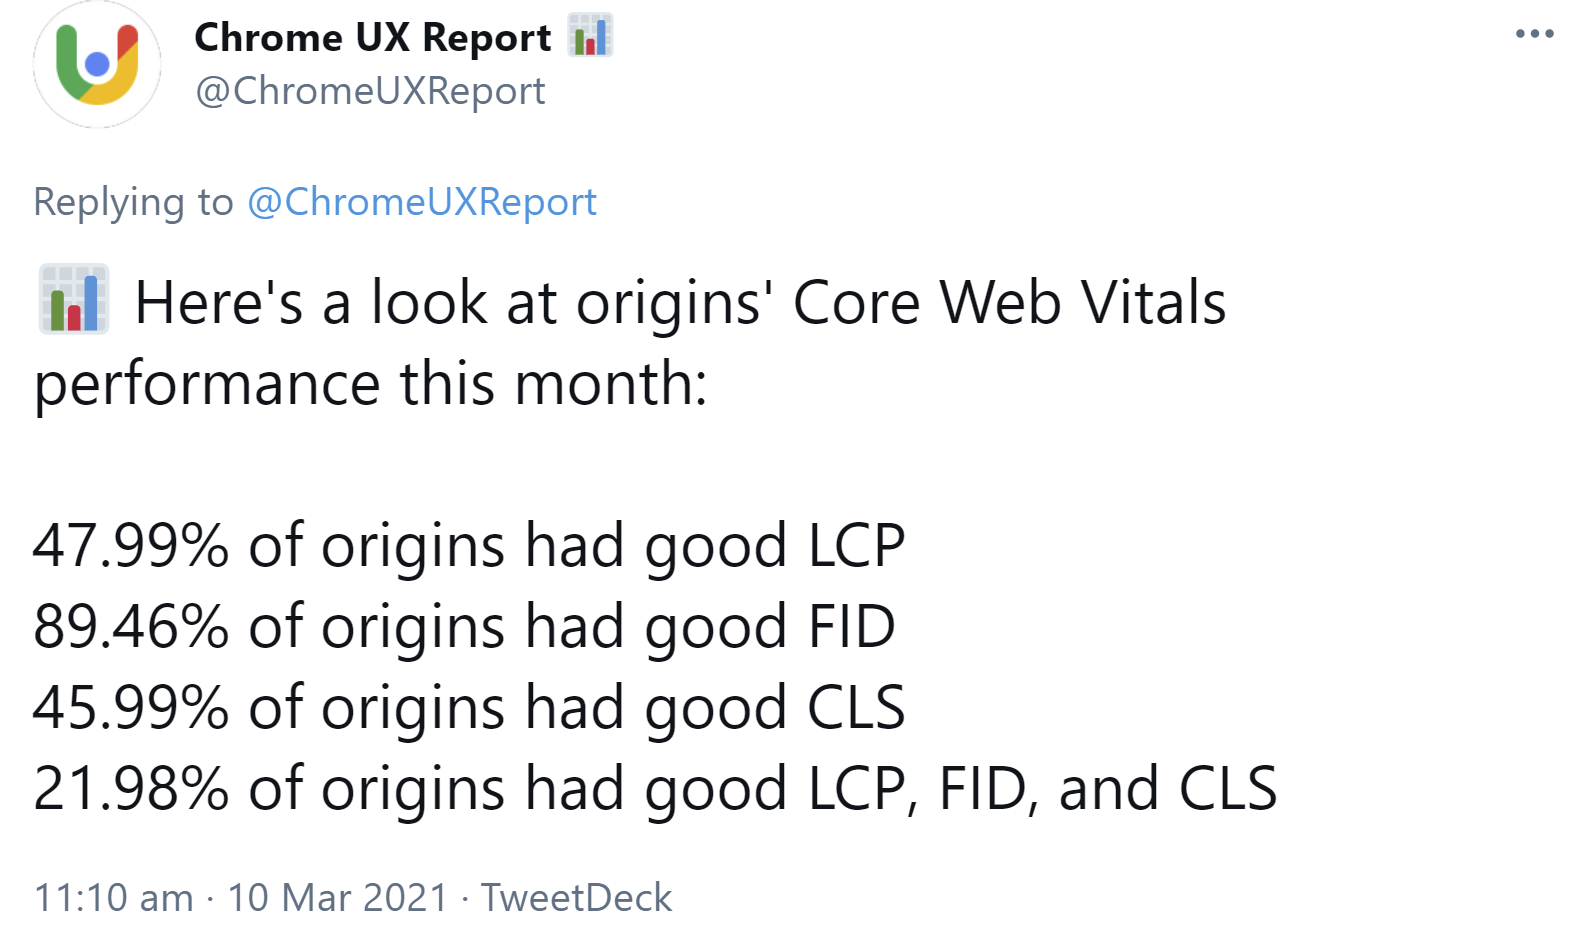 The image shows a publication of Chrome UX Report. Here, current figures on the Core Web Vital score of websites are shown. Almost 48% have a good LCP score, almost 90% have a good FID score, and about 46% have a good CLS score. In contrast, only just under 22% of all domains have good values in all three metrics.